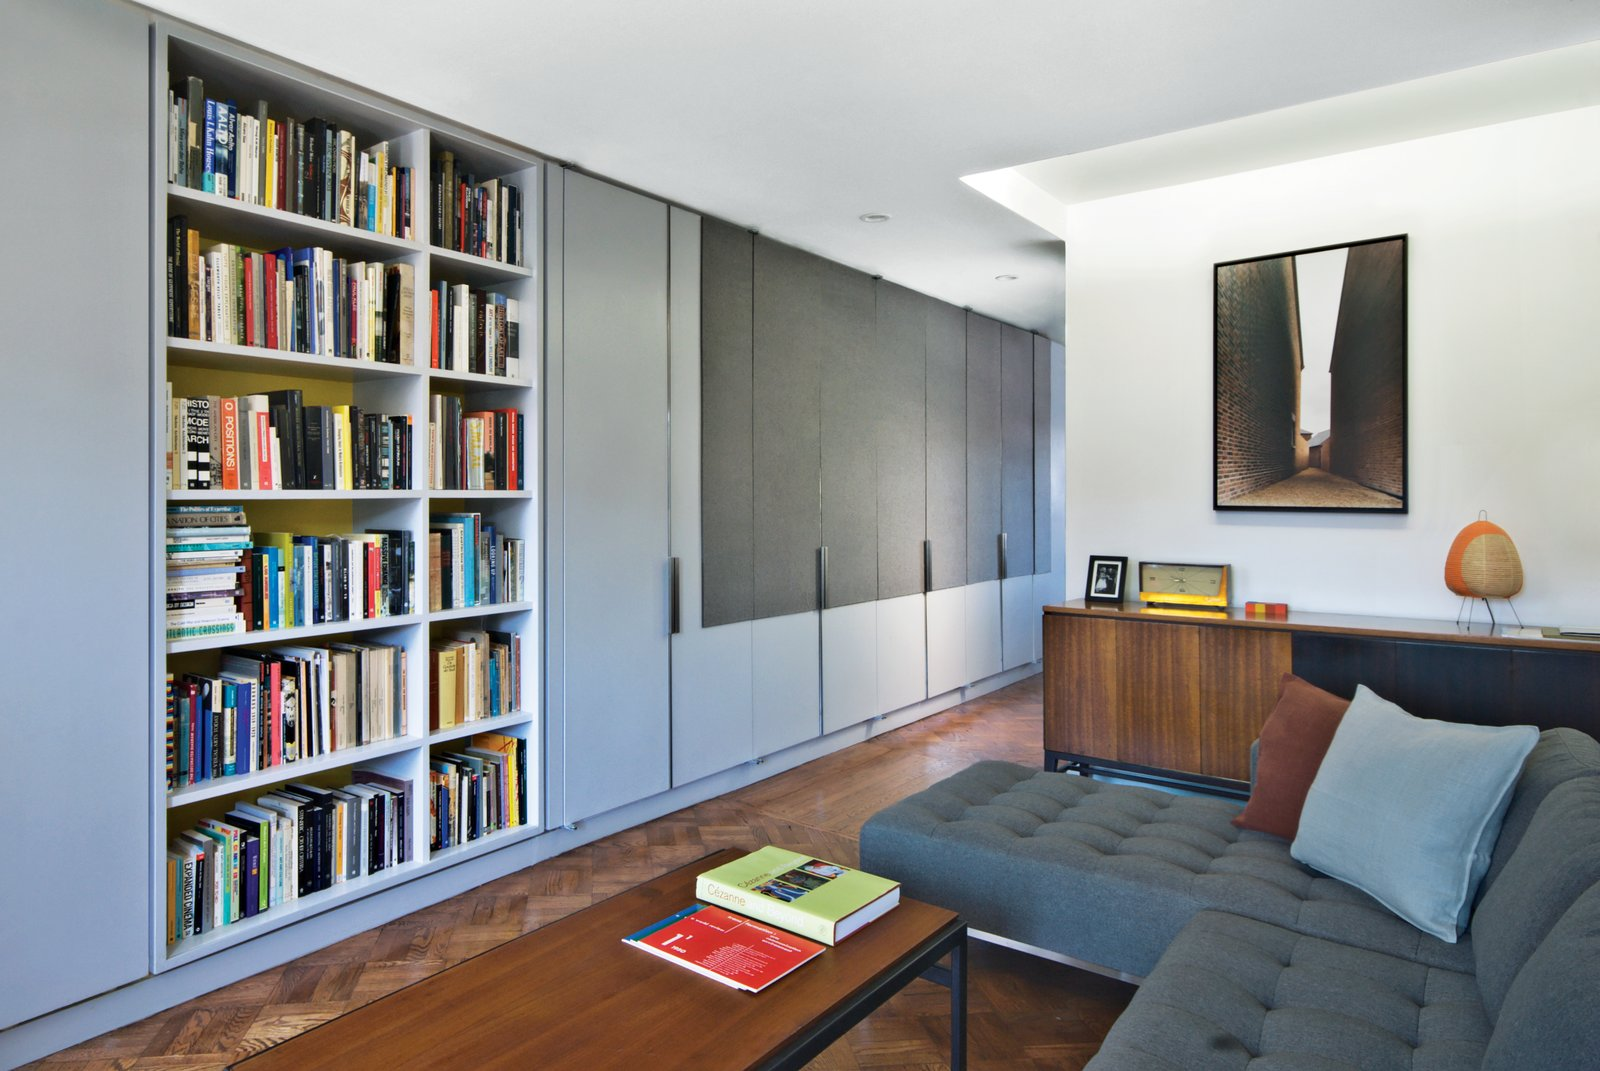 Small Spaces Tv Show Channel Gallery - Home & Furniture Design ...